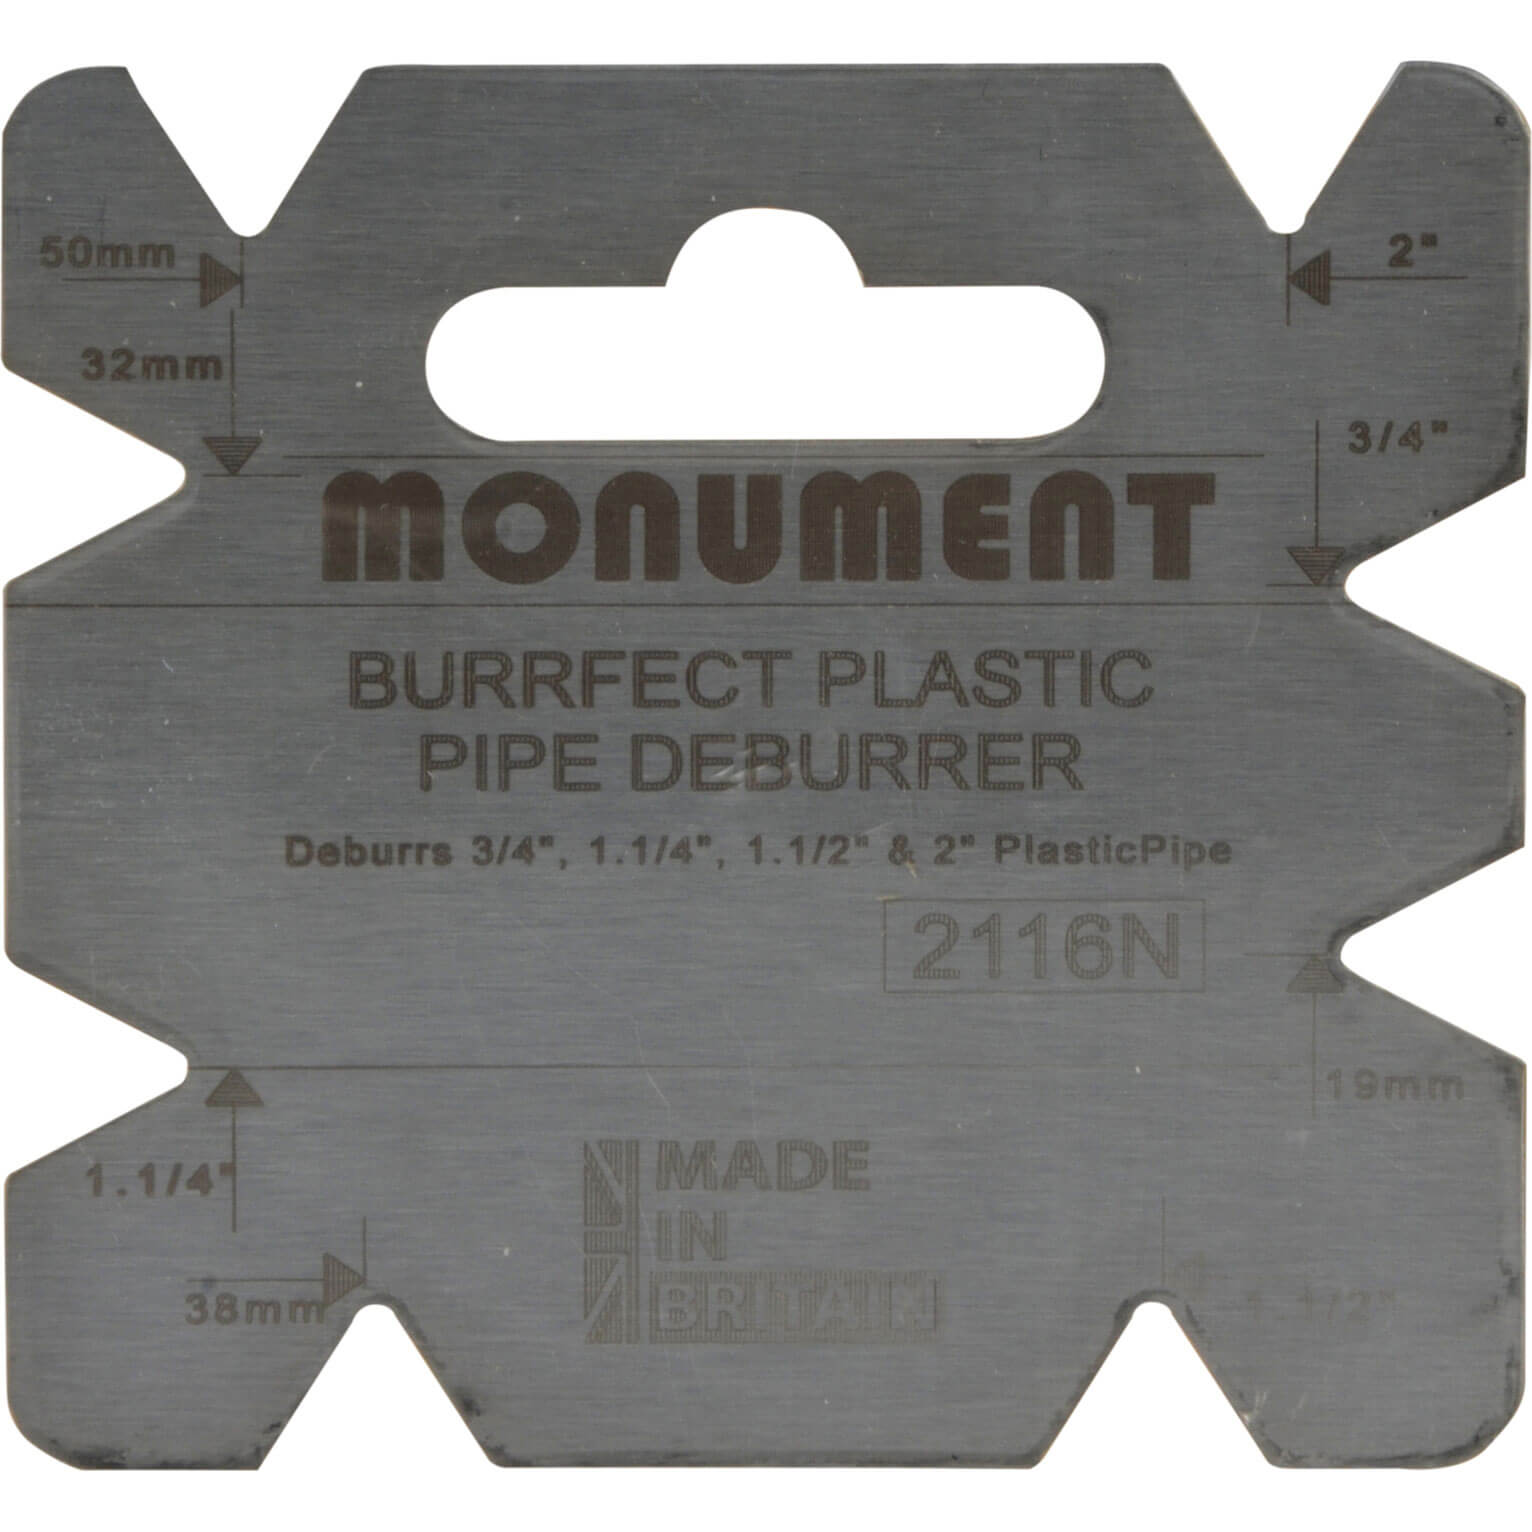 Image of Monument 2116N Burrfect Pipe Deburrer